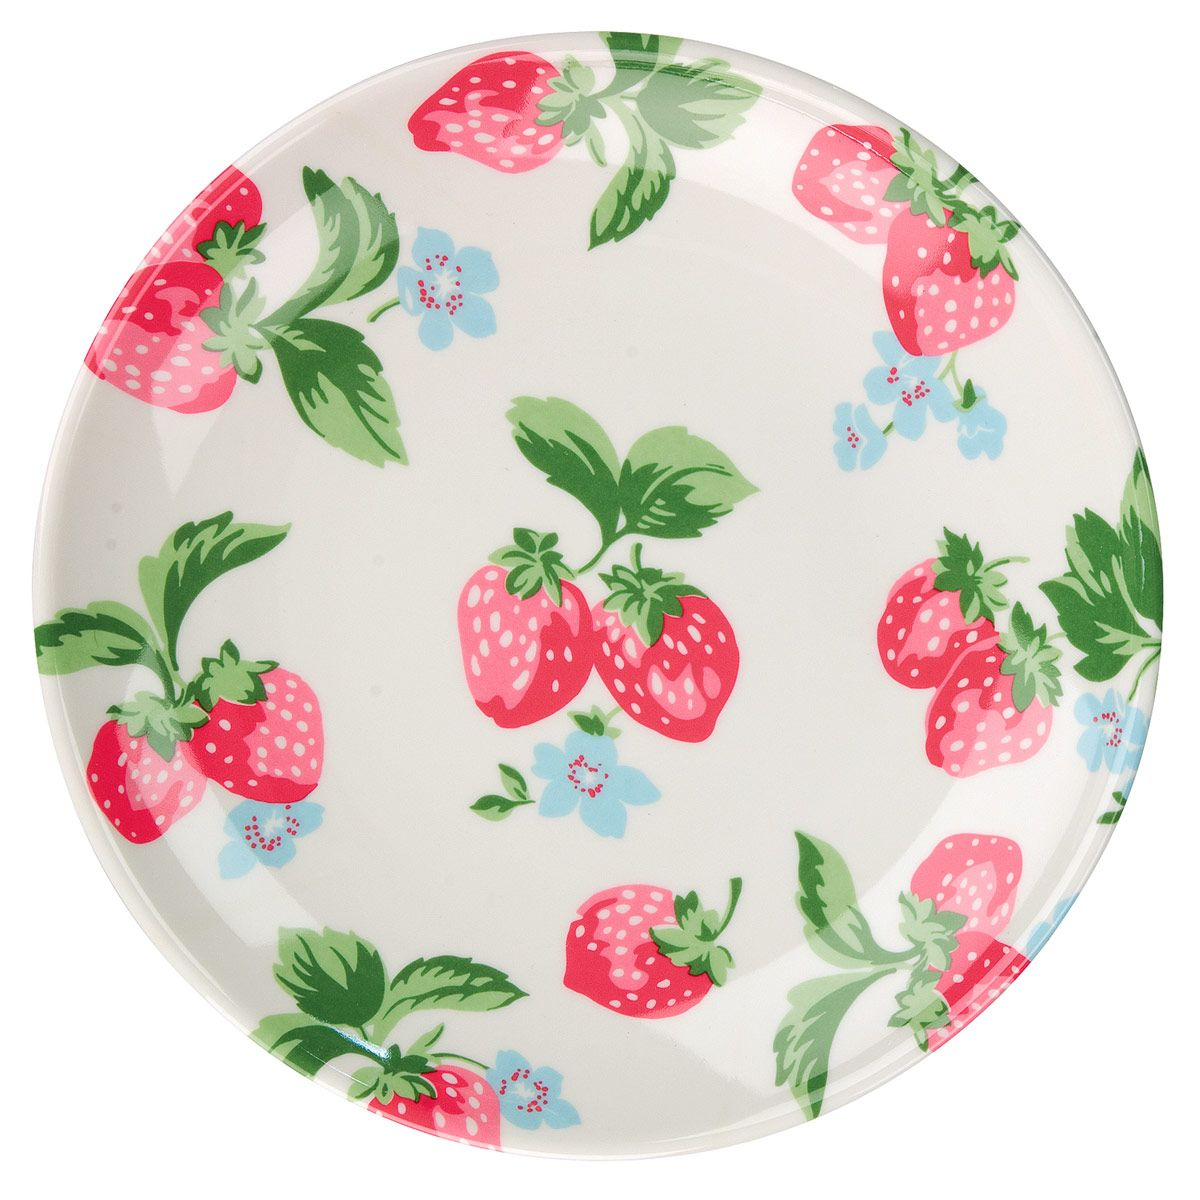 Strawberry Shortcake Kitchen Set: Game, Set, Match. Or At The Very Least Matching Strawberry